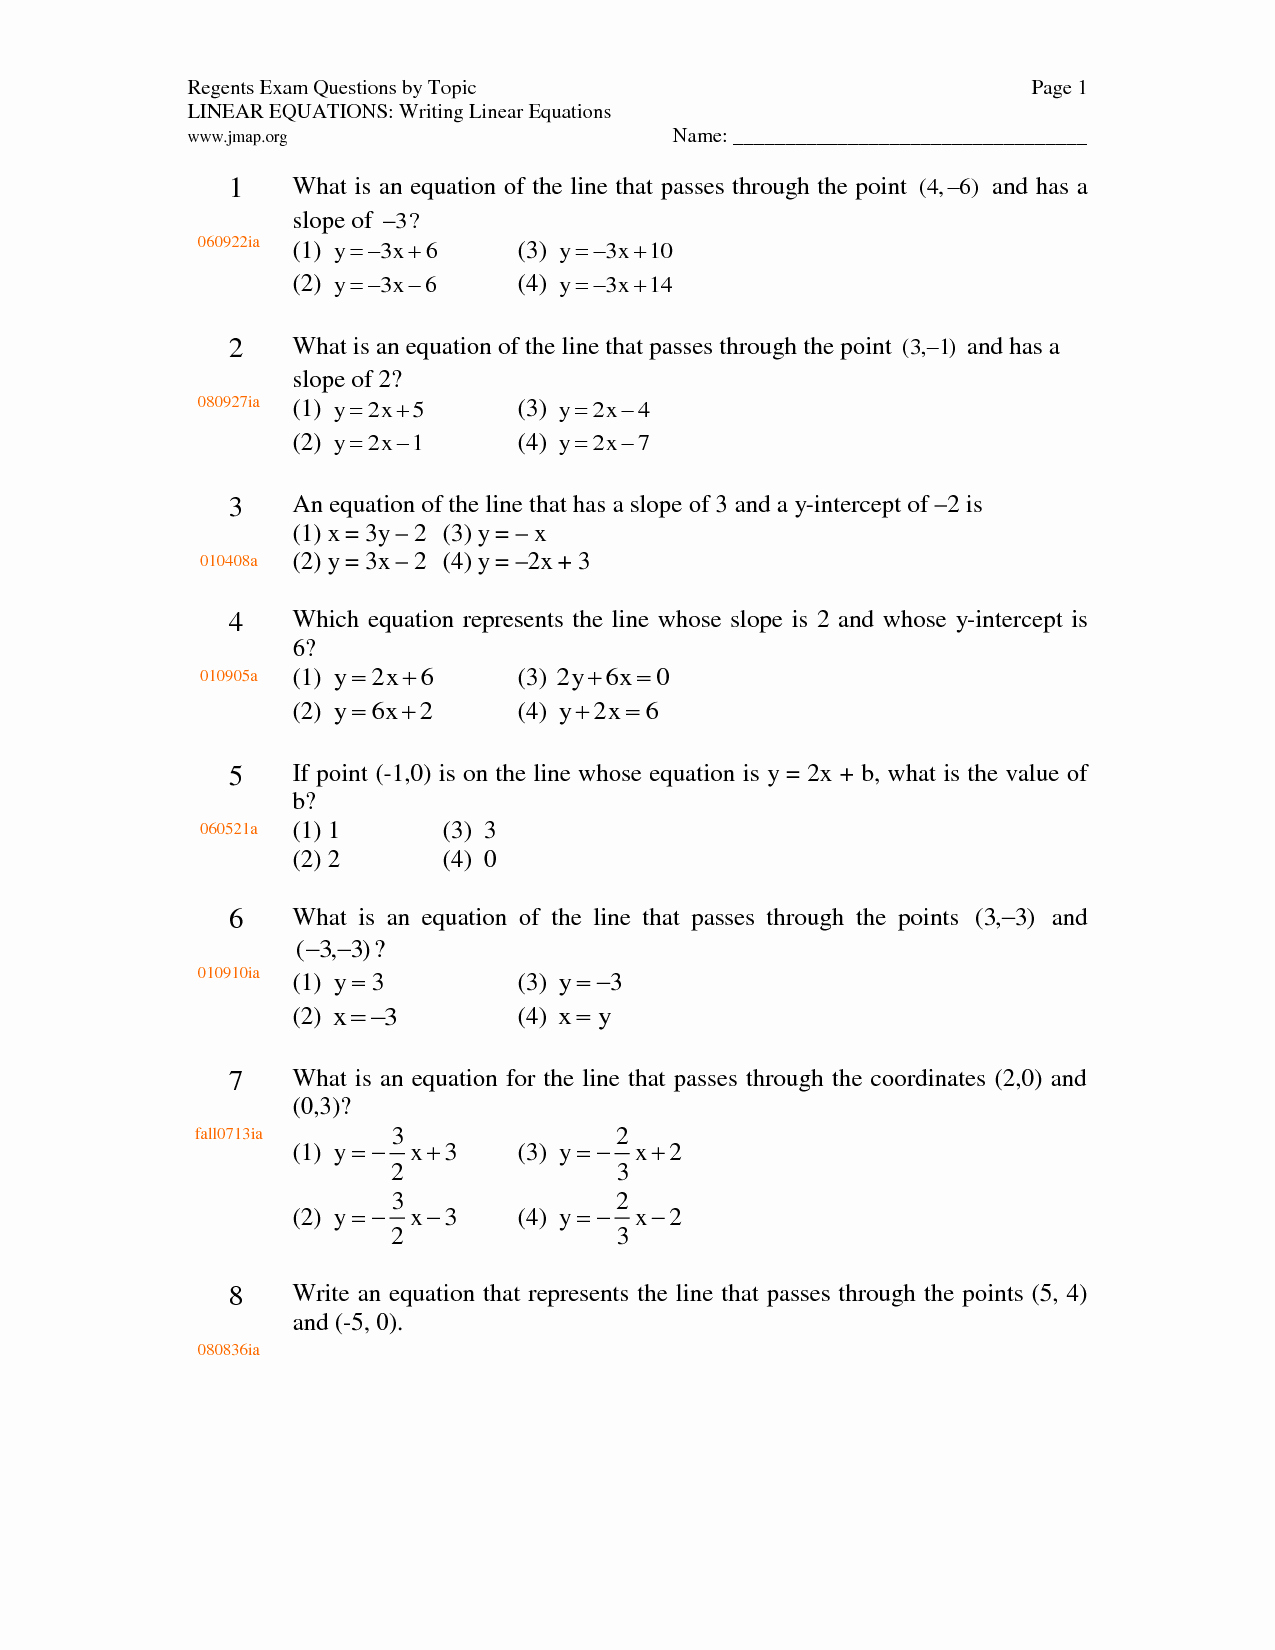 Writing Equations Of Lines Worksheet Elegant Writing Linear Equations Worksheet Doc